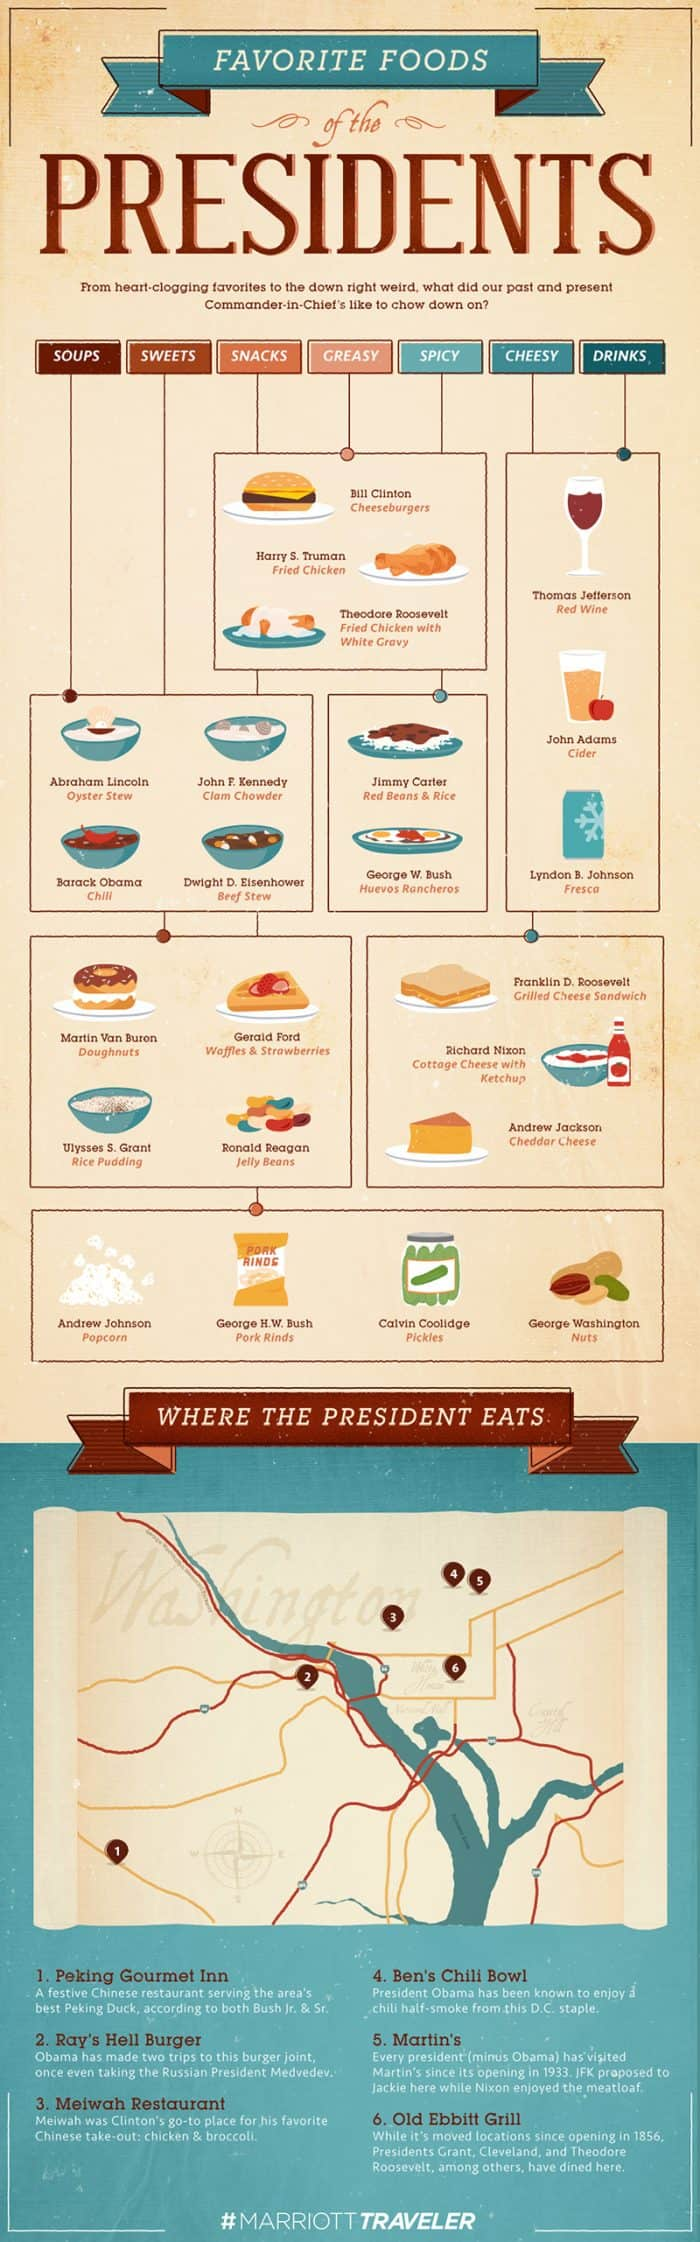 Some of the favorite foods from former U.S. presidents